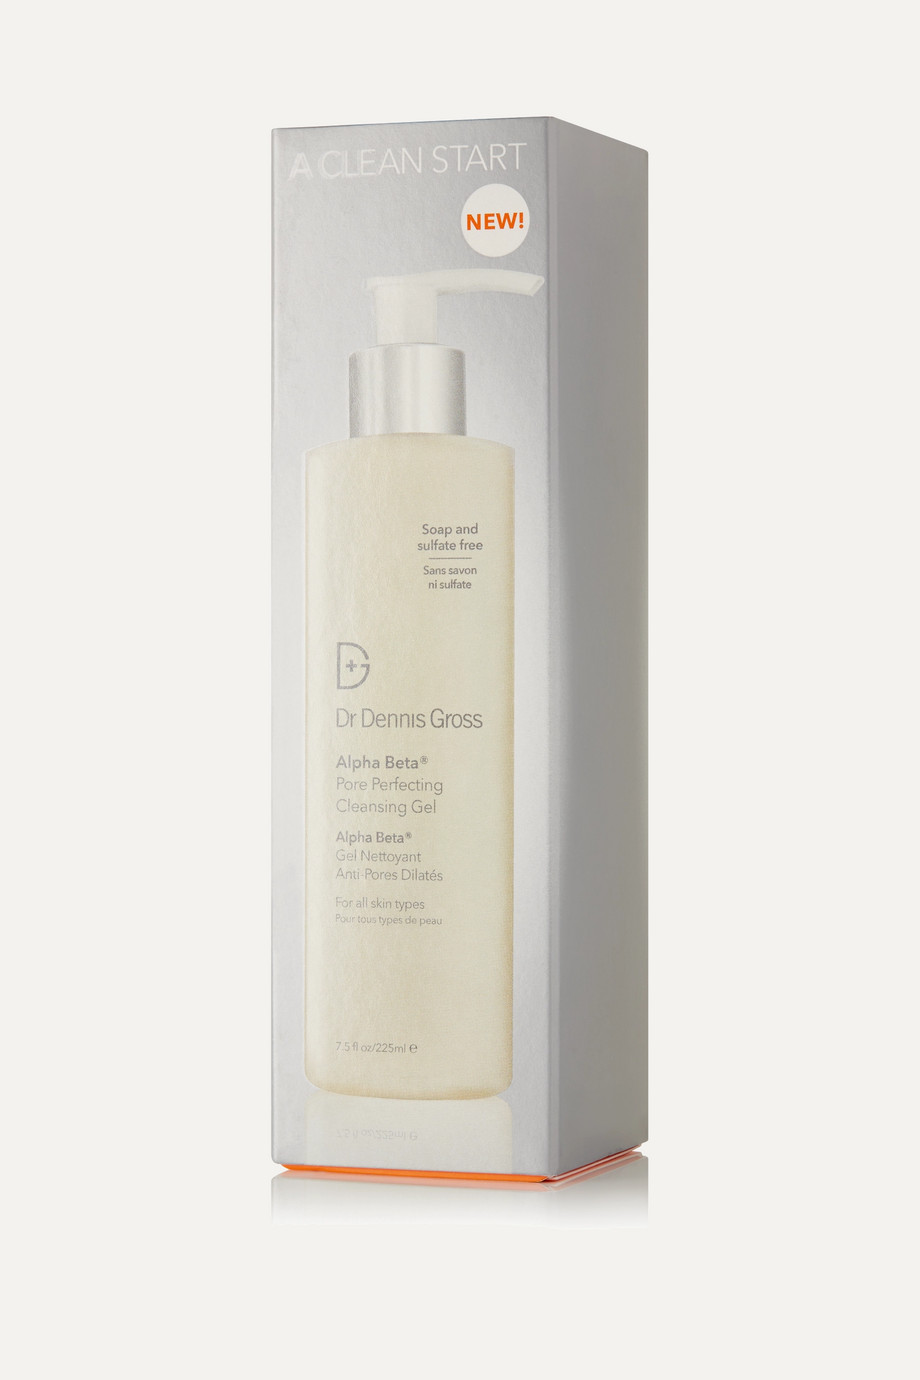 Dr. Dennis Gross Skincare Alpha Beta Pore Perfecting Cleansing Gel, 225ml